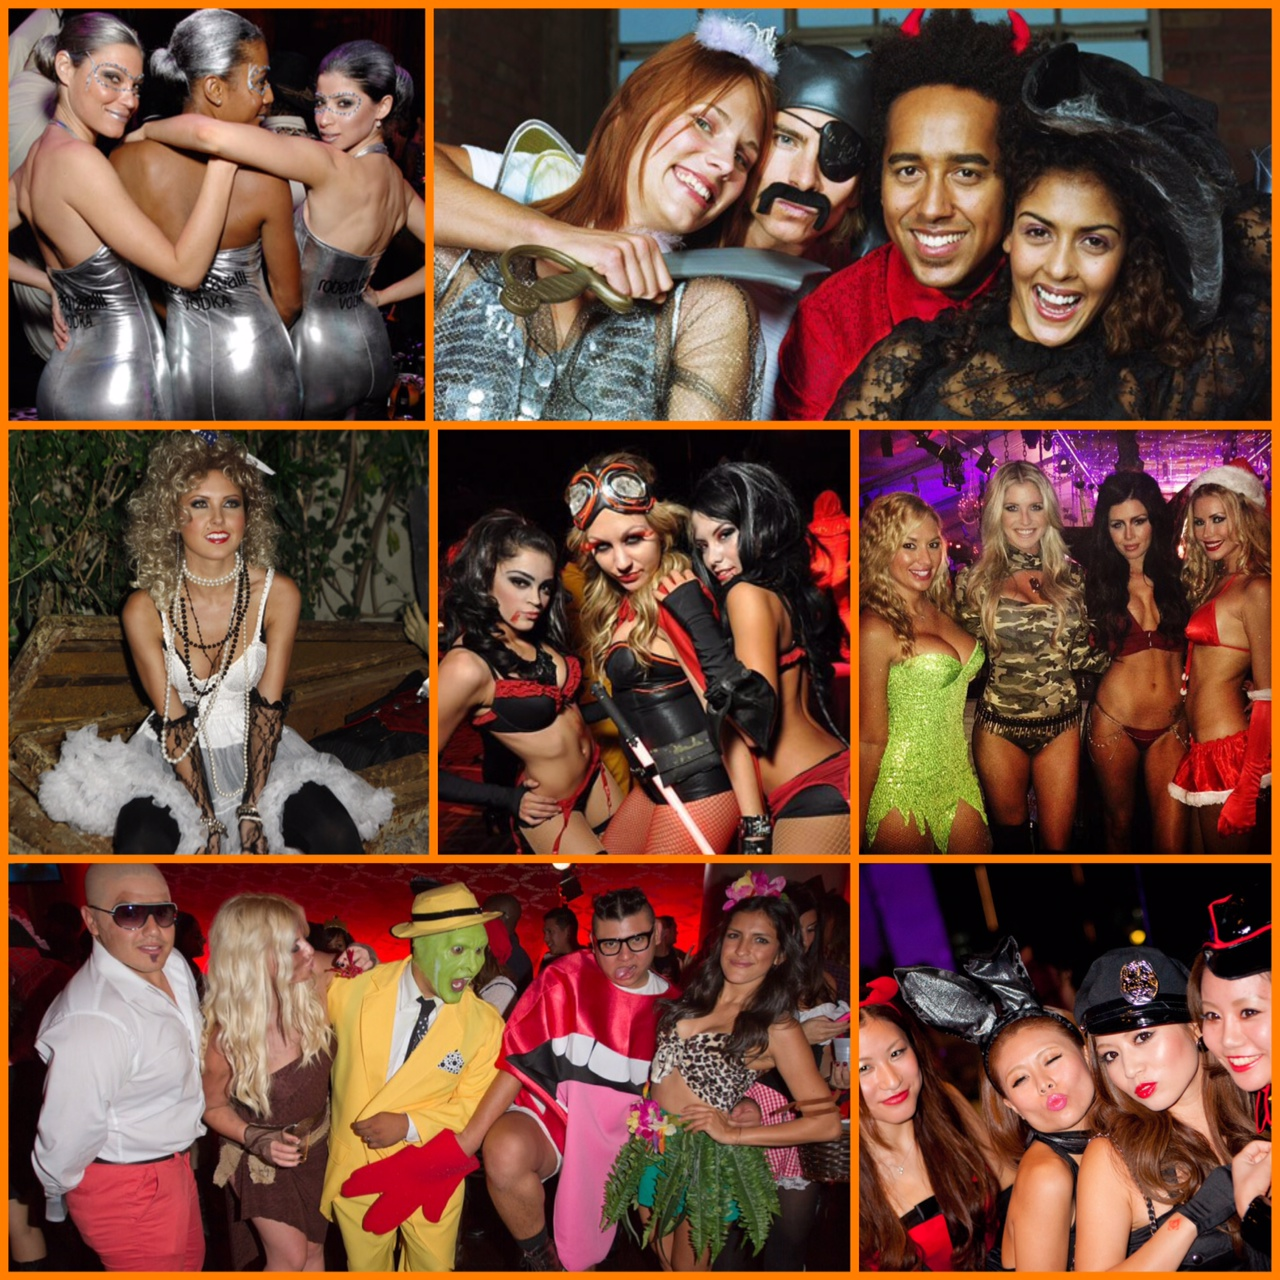 come party with over 600 people on all 3 levels as we sail on the beautiful and historical mississippi river this is the halloween party you dont want to - New Orleans Halloween Parties